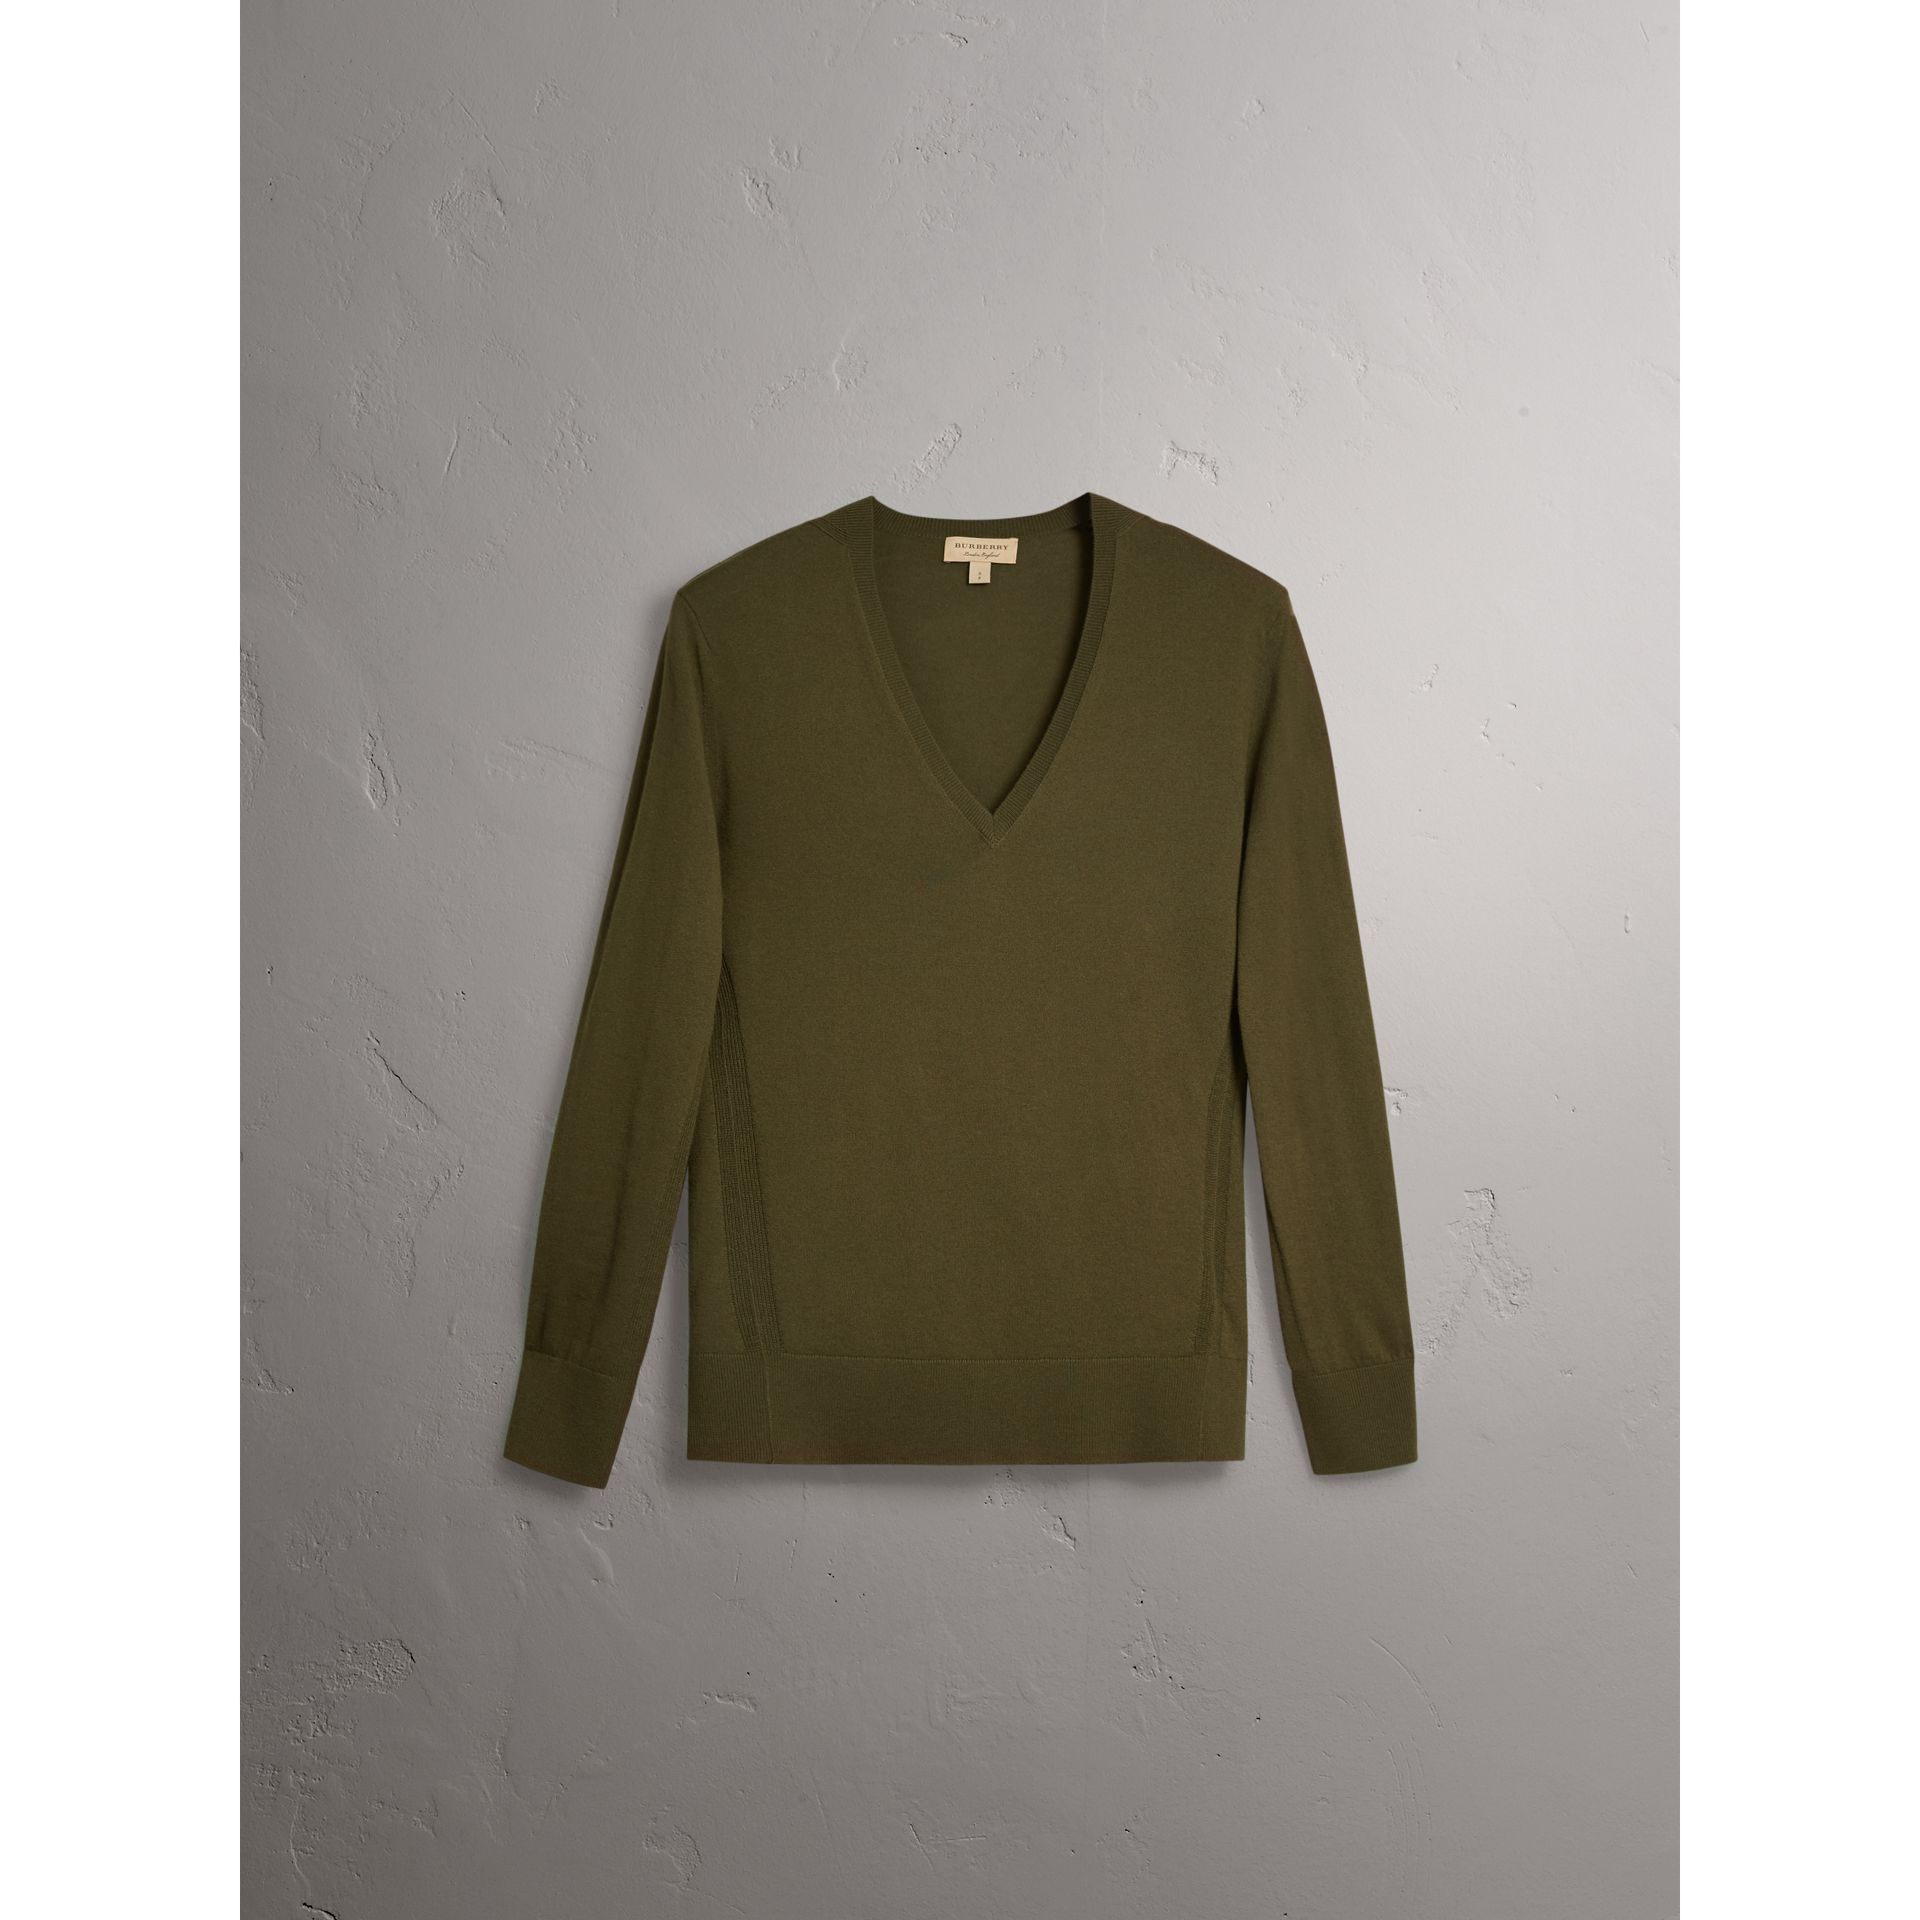 Check Detail Cashmere V-neck Sweater in Khaki Green - Women | Burberry United Kingdom - gallery image 3